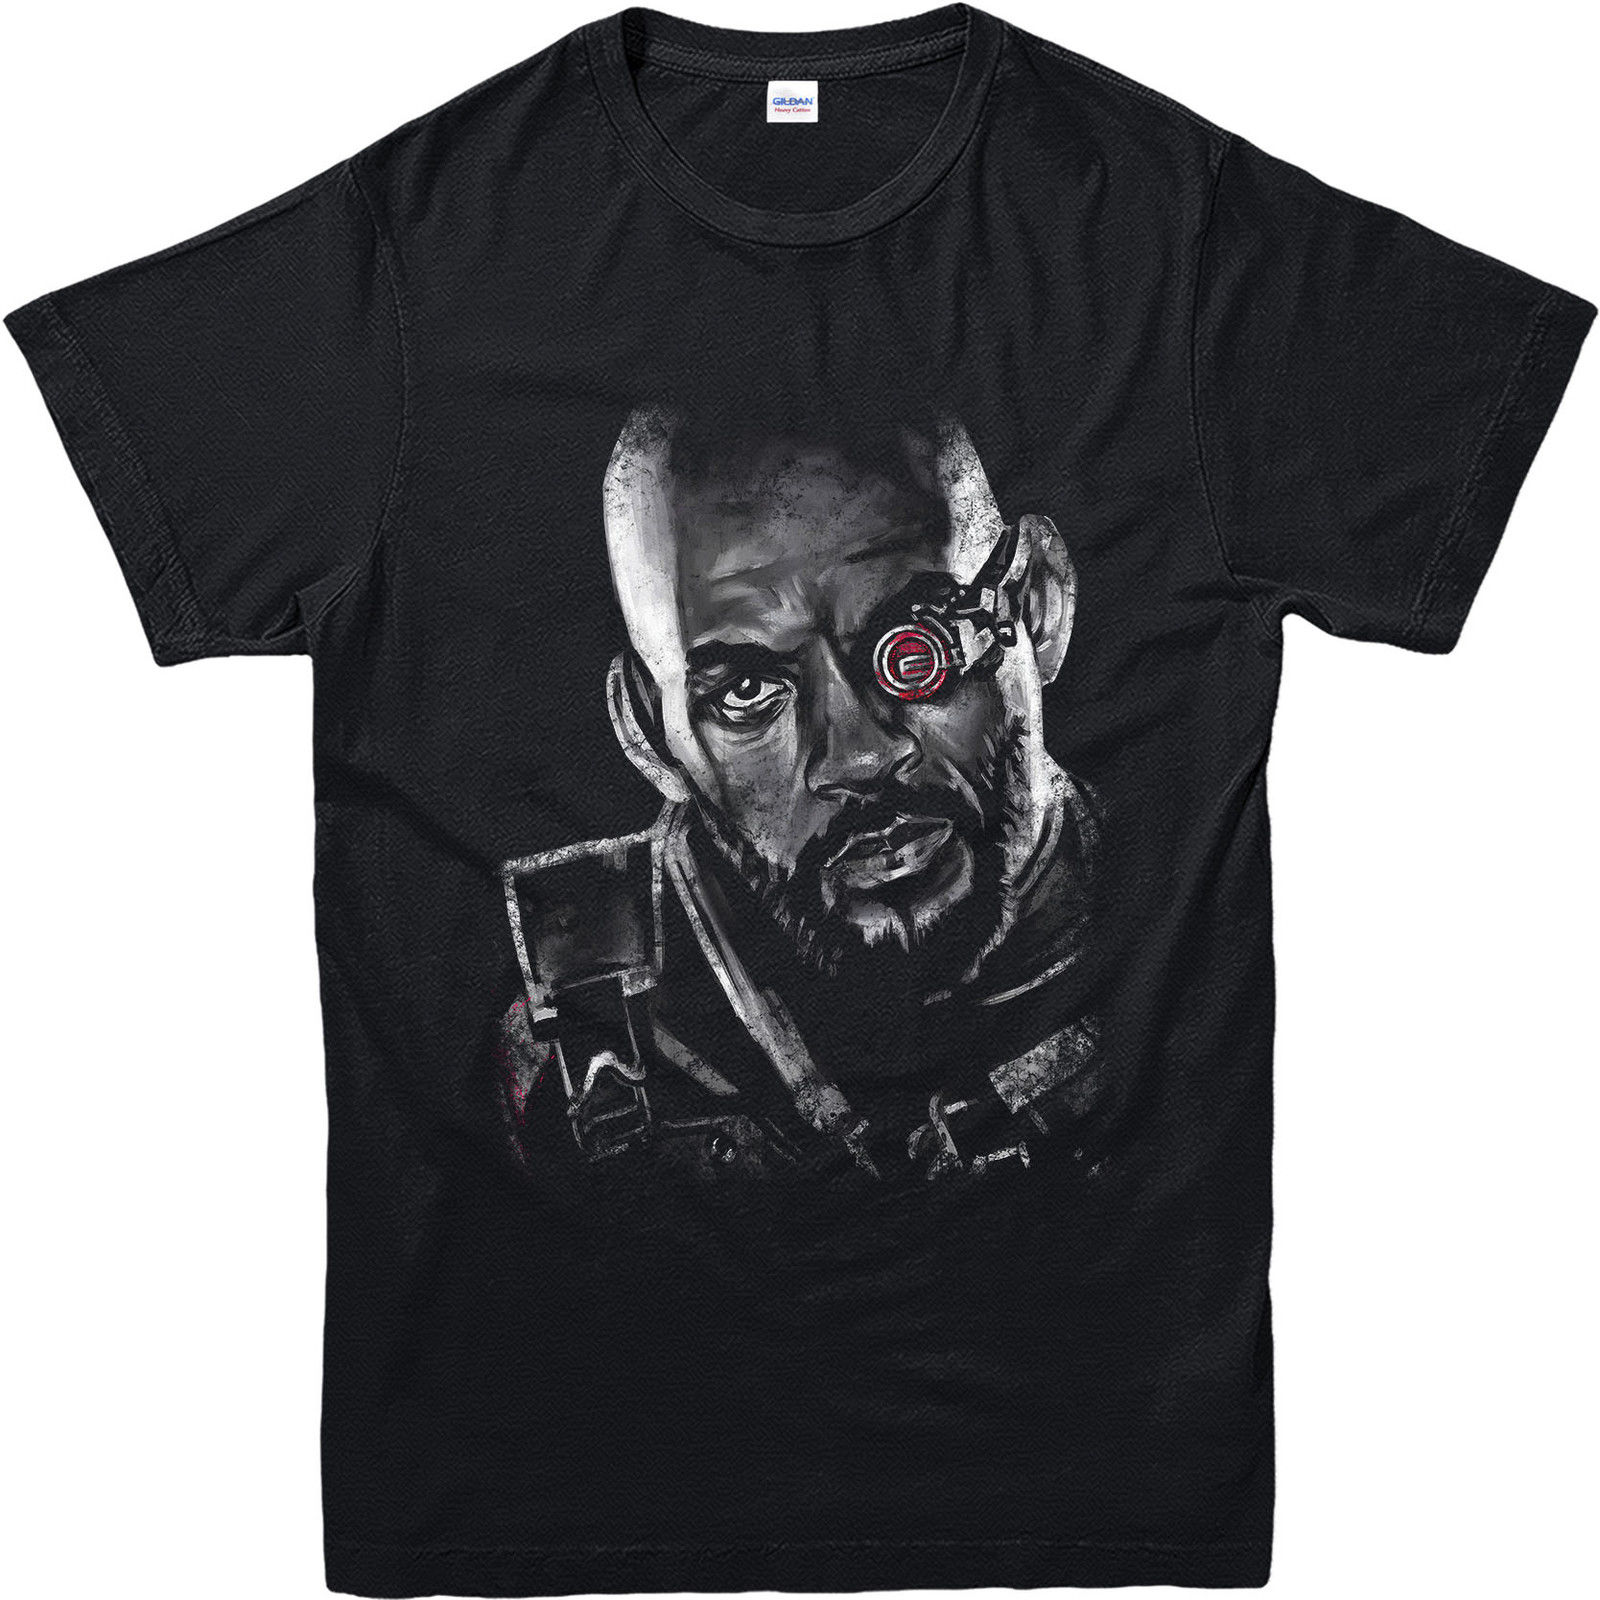 dswsf Original Deadshot T-shirt Will Smith Face fashion Summer Top Tee Numerous In Variety Inspired Design Top